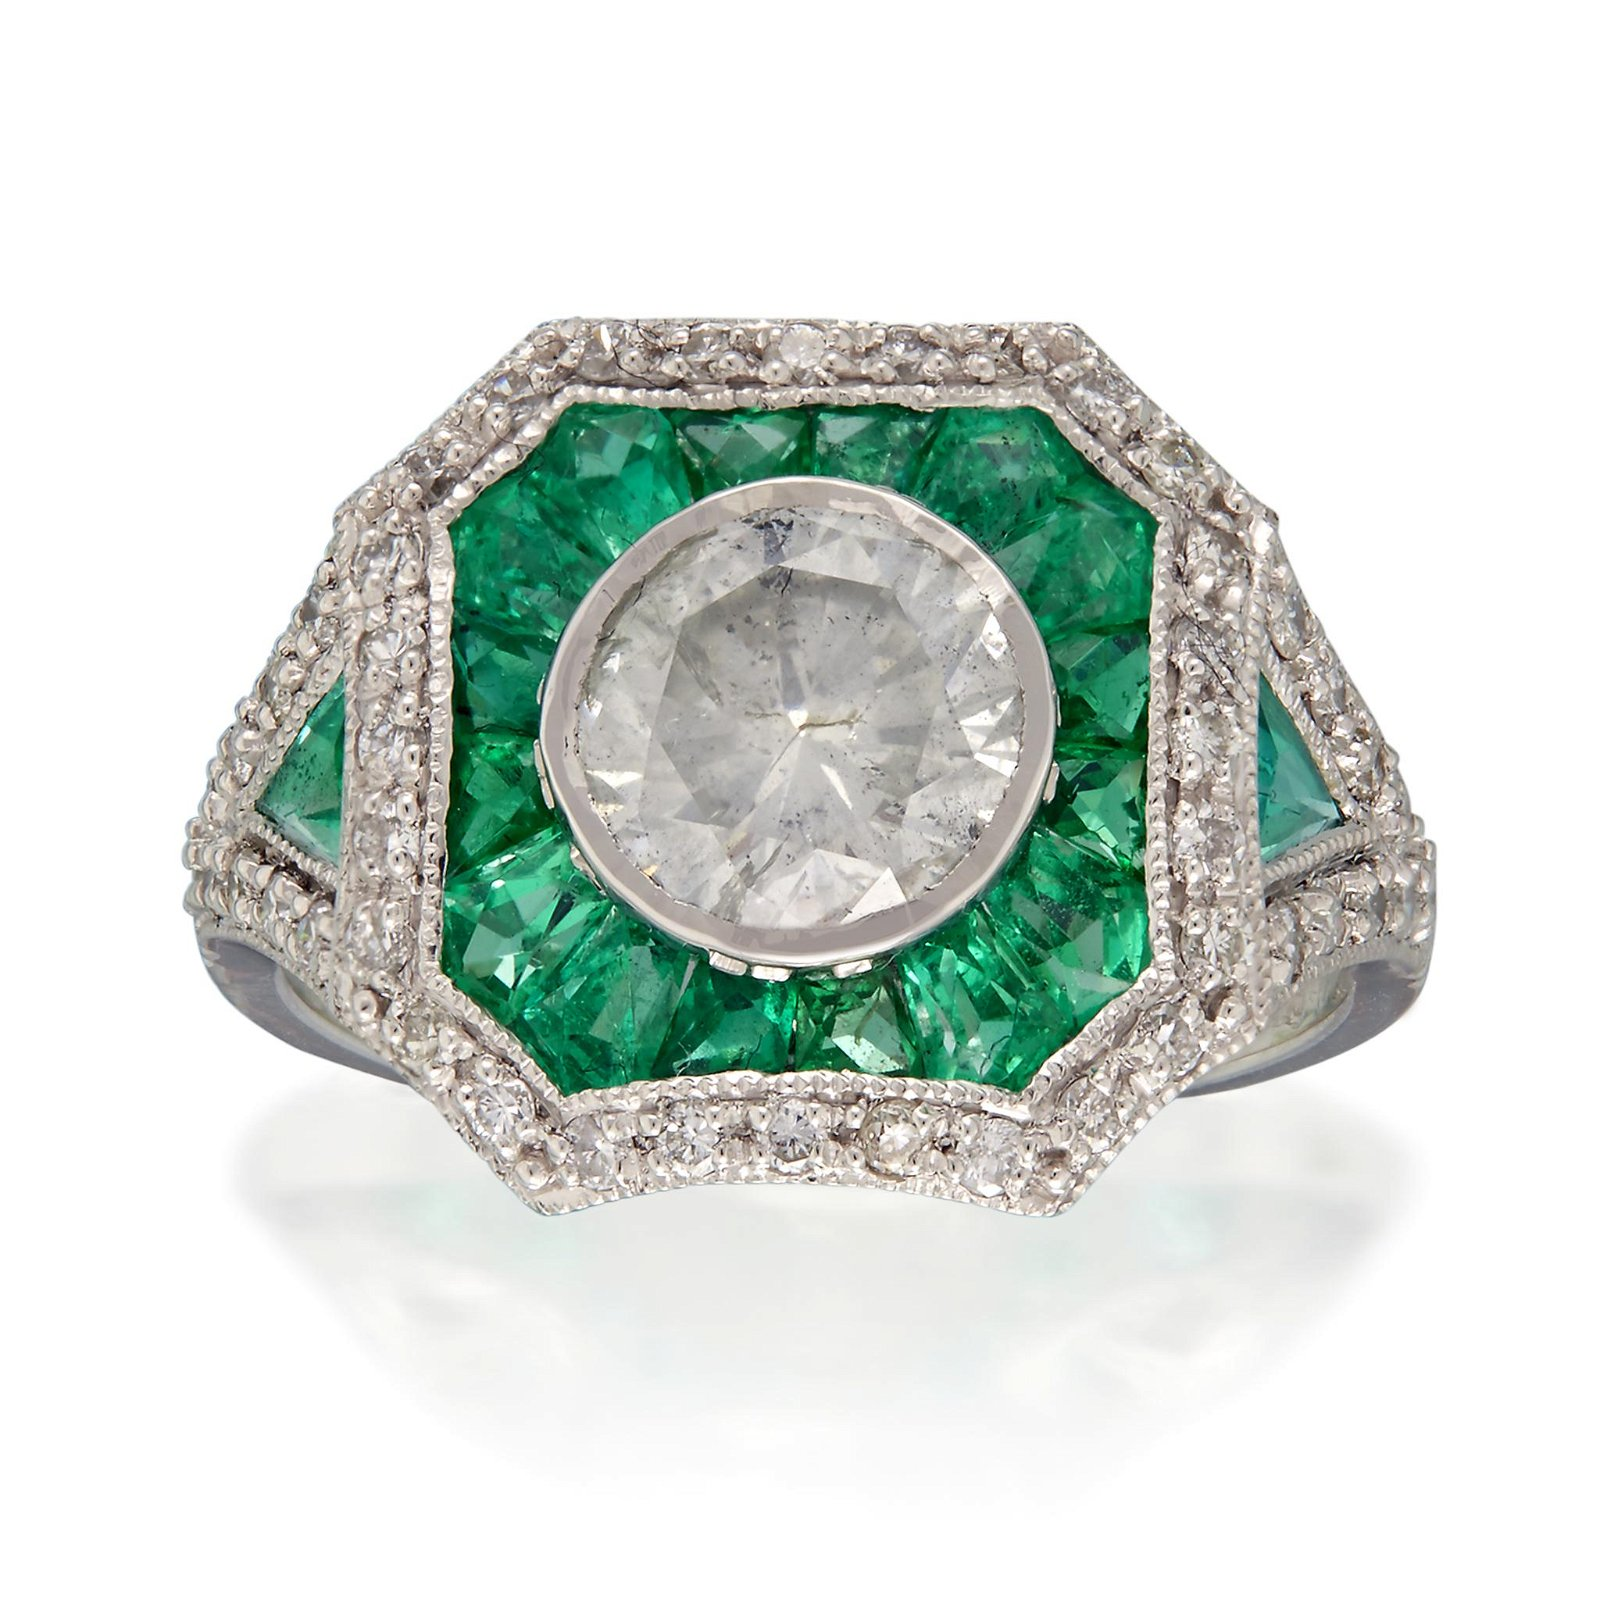 A diamond, emerald, and platinum ring,